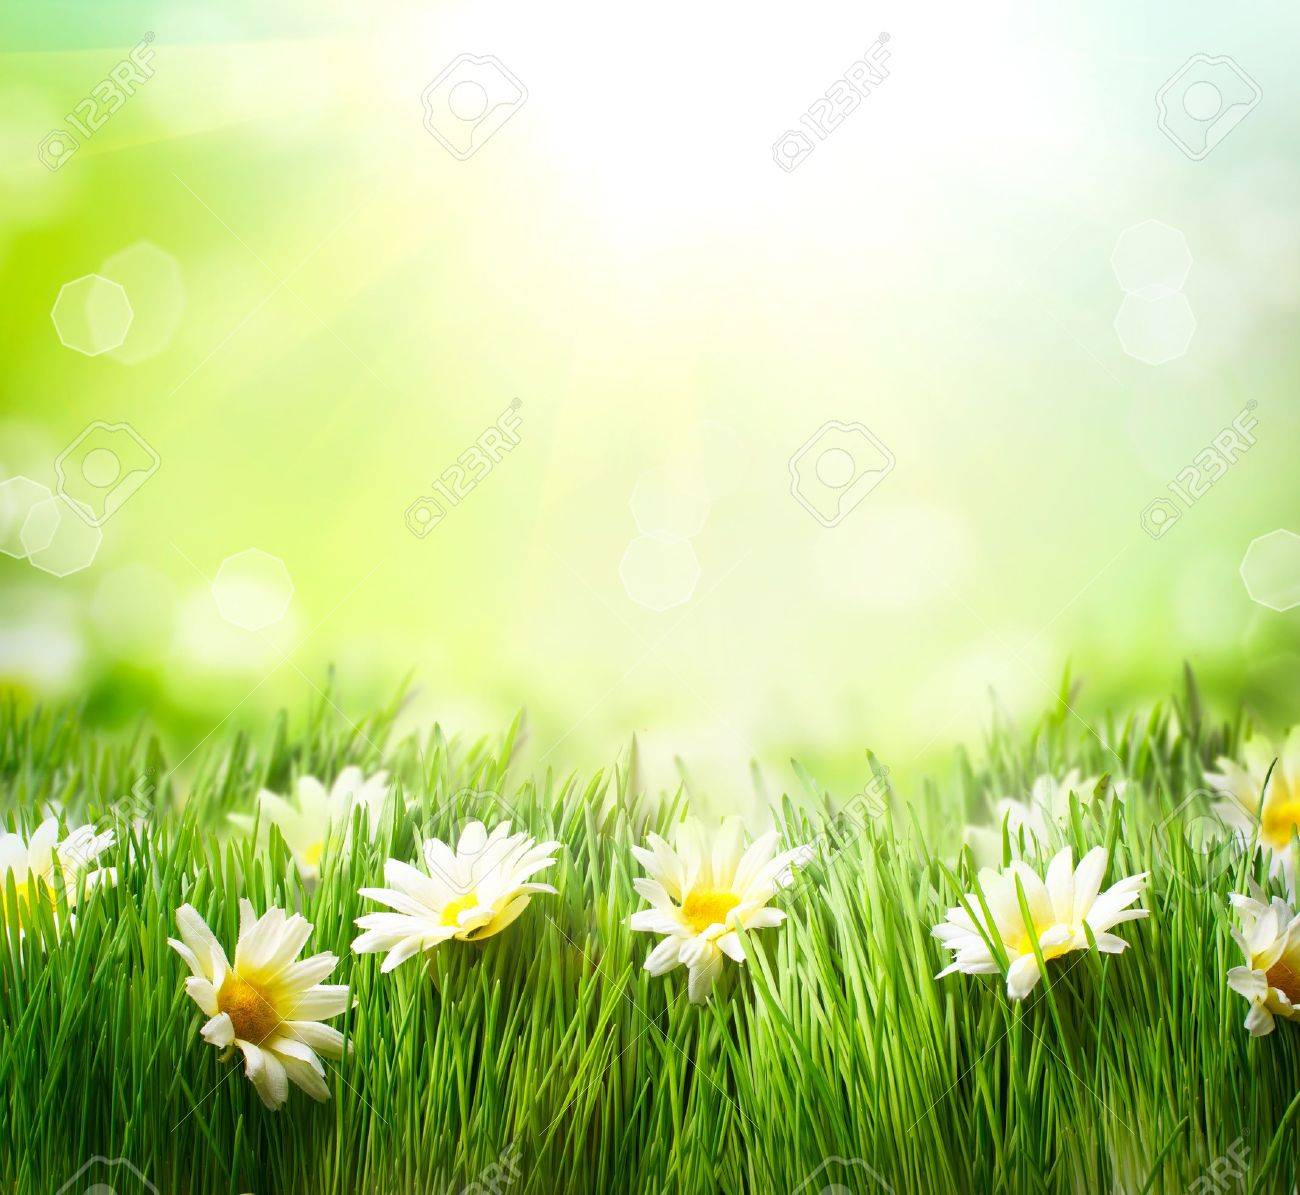 grass and flowers border.  Flowers Spring Meadow With Daisies Grass And Flowers Border Stock Photo  18892685 Inside And Border